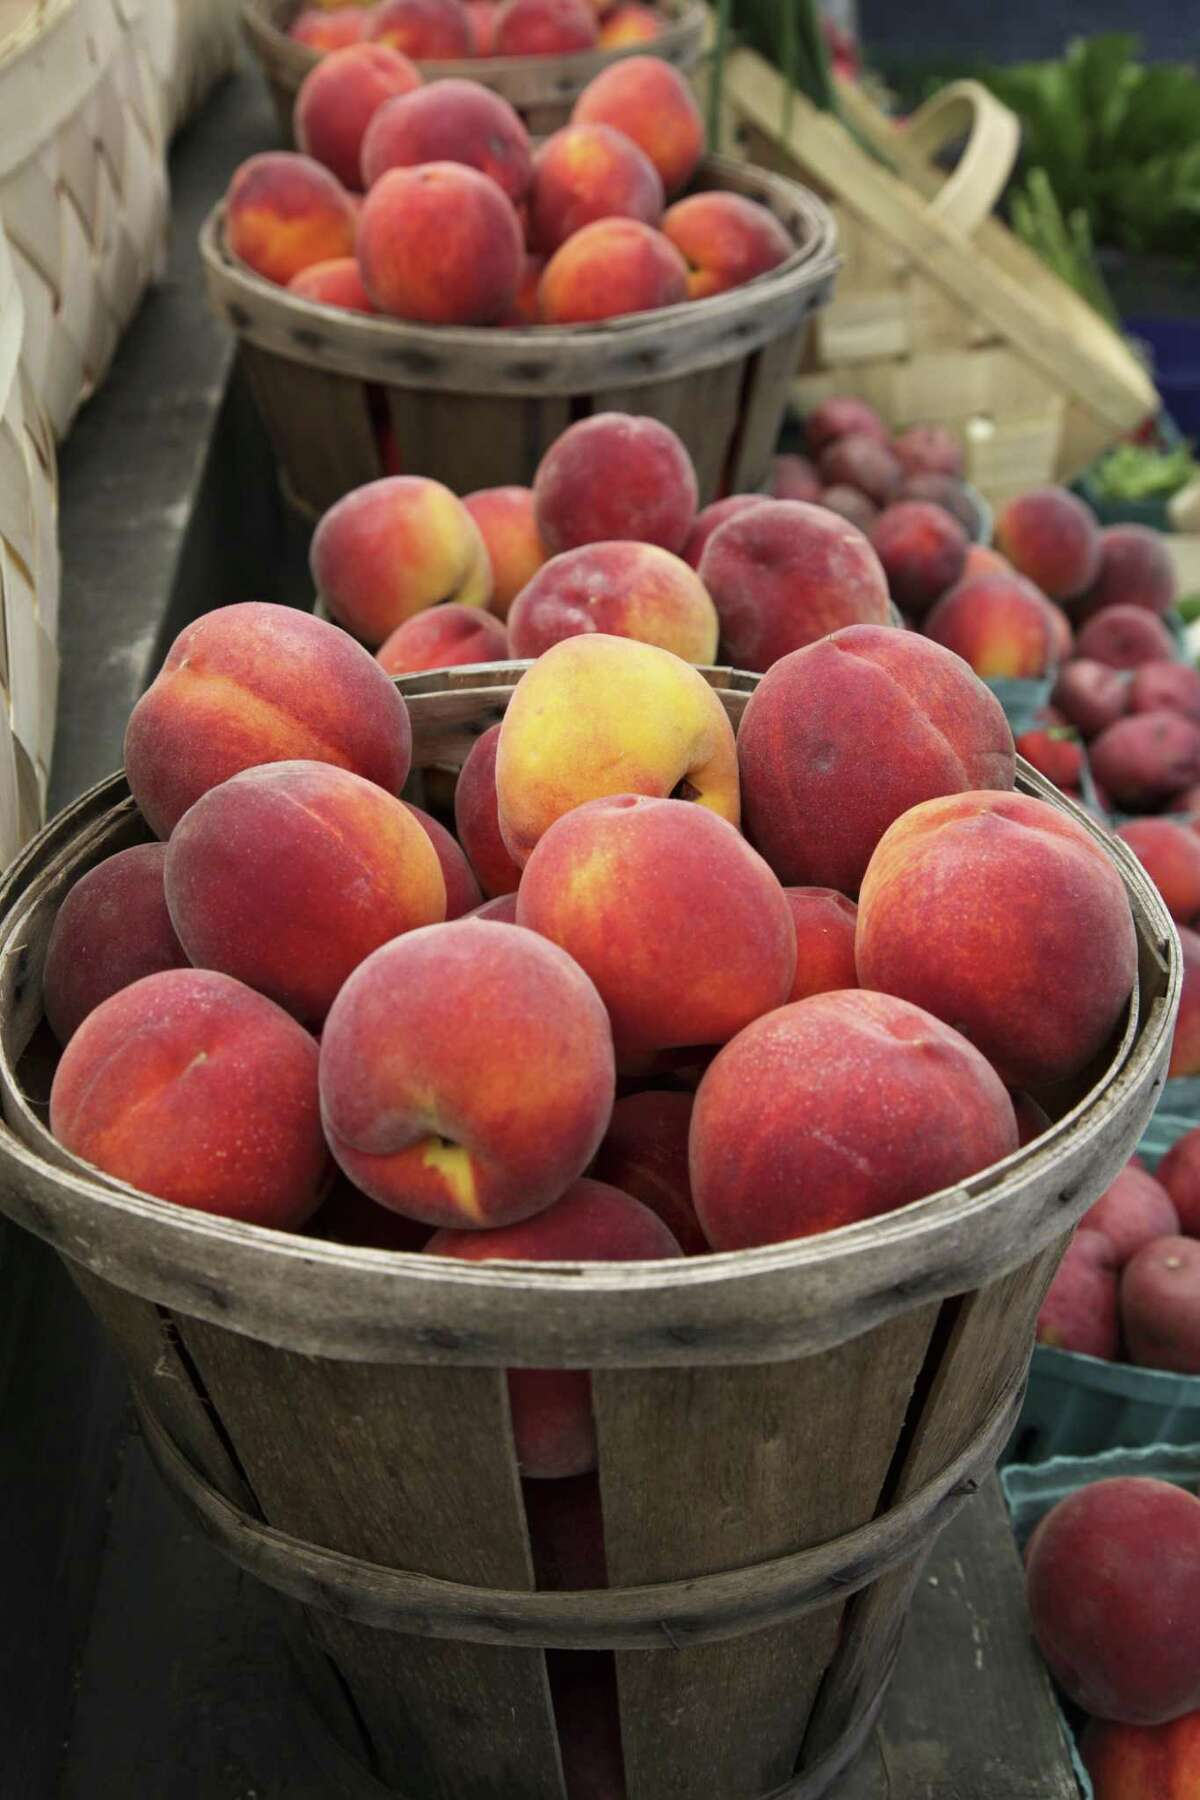 Corpus Christi farmers market in downtown 100 N. Shoreline Blvd, Wednesdays 5pm to 8pm